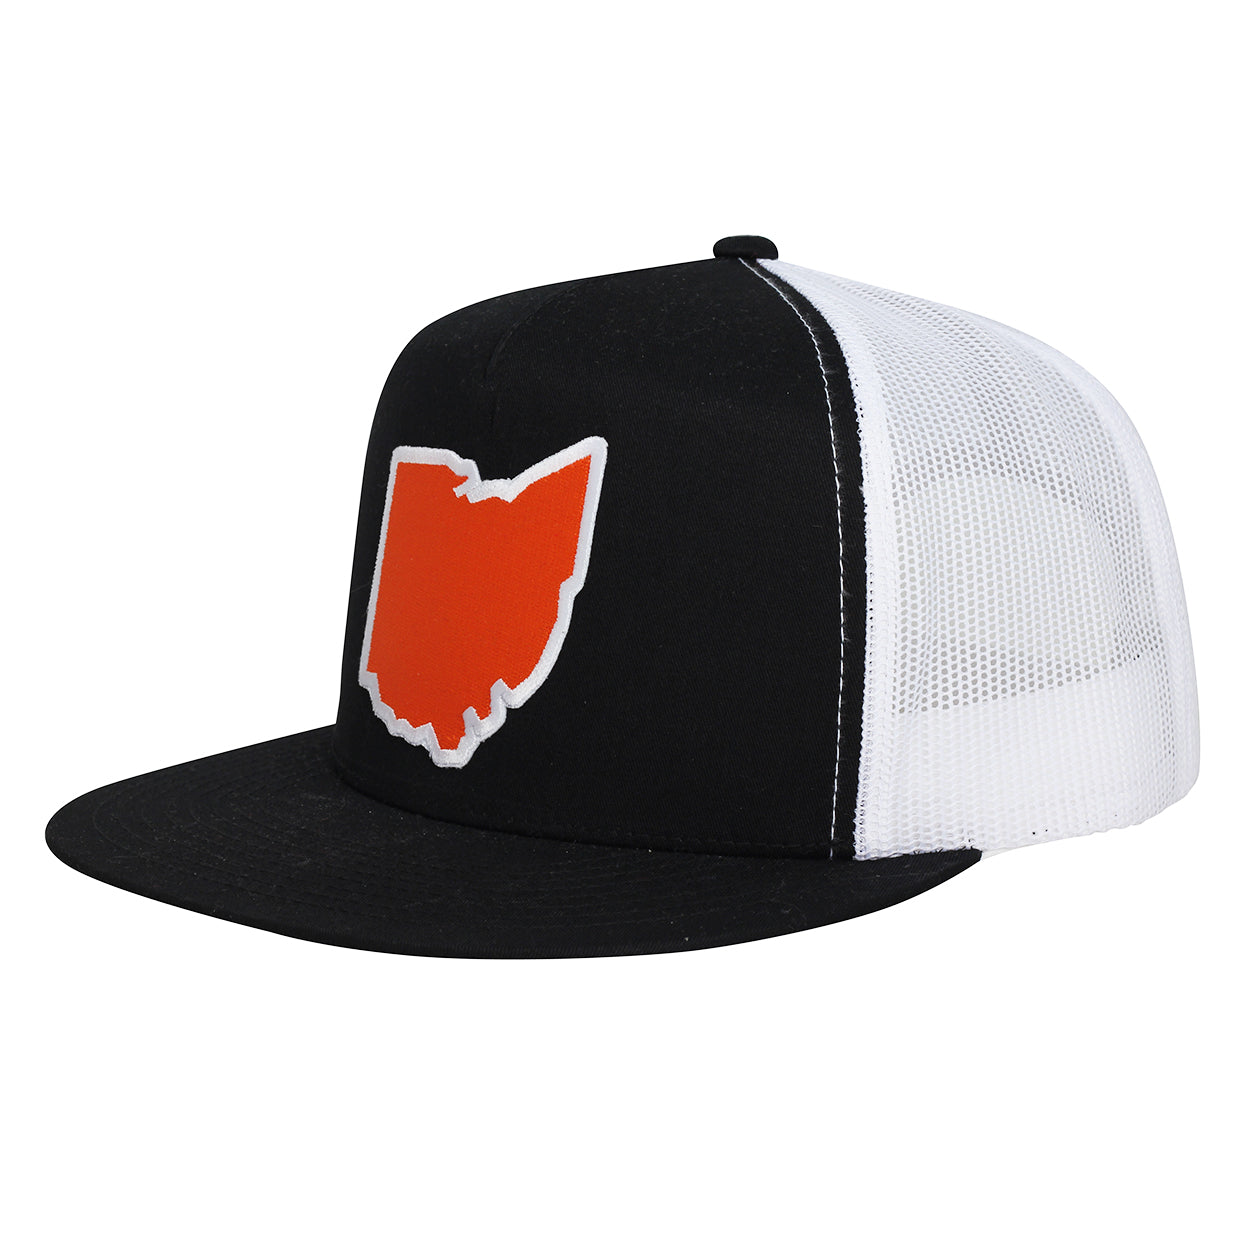 Ohio Orange Patch Wool Snap back Trucker Hat